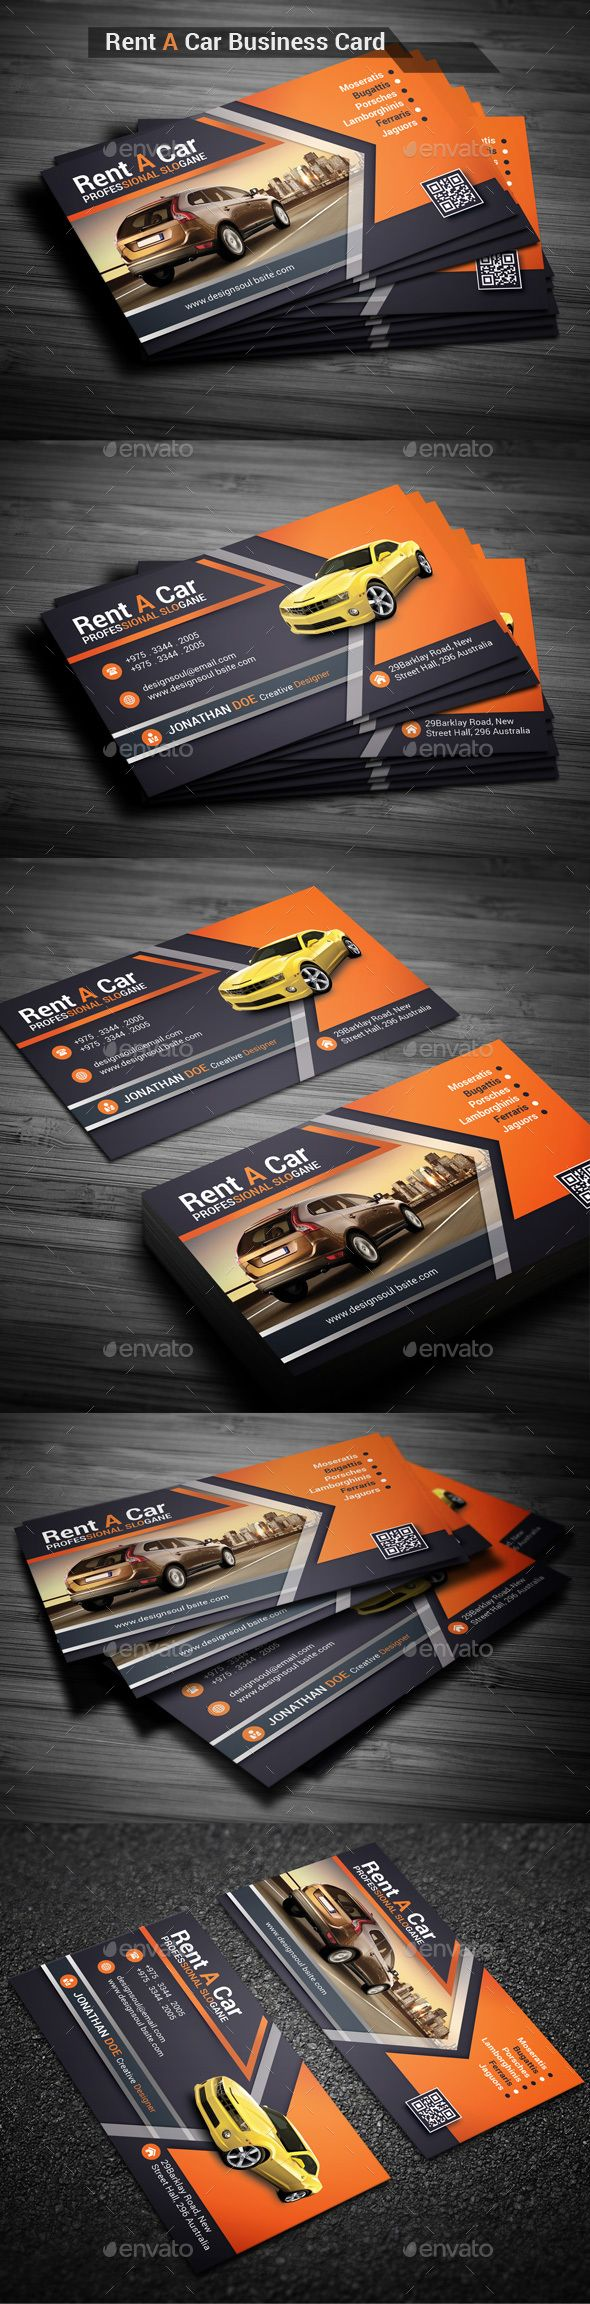 Rent A Car Business Card                                                                                                                                                      Más